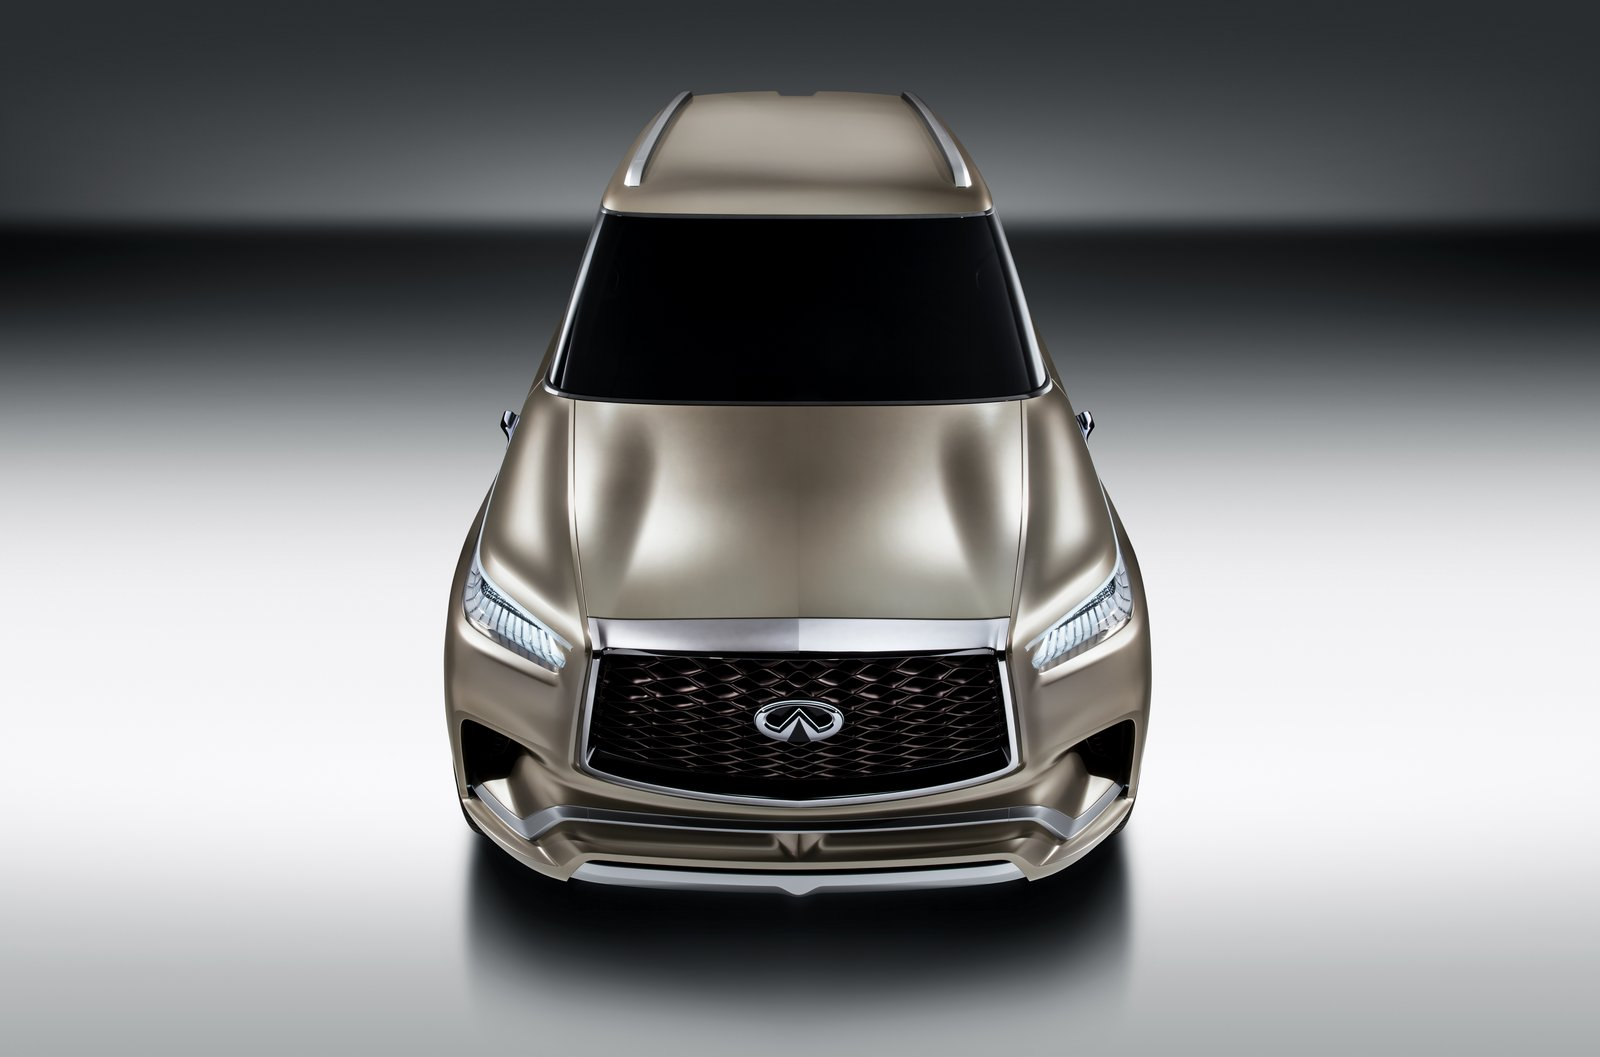 2018 Infiniti QX80 To Use Same Powertrain And Platform As Current